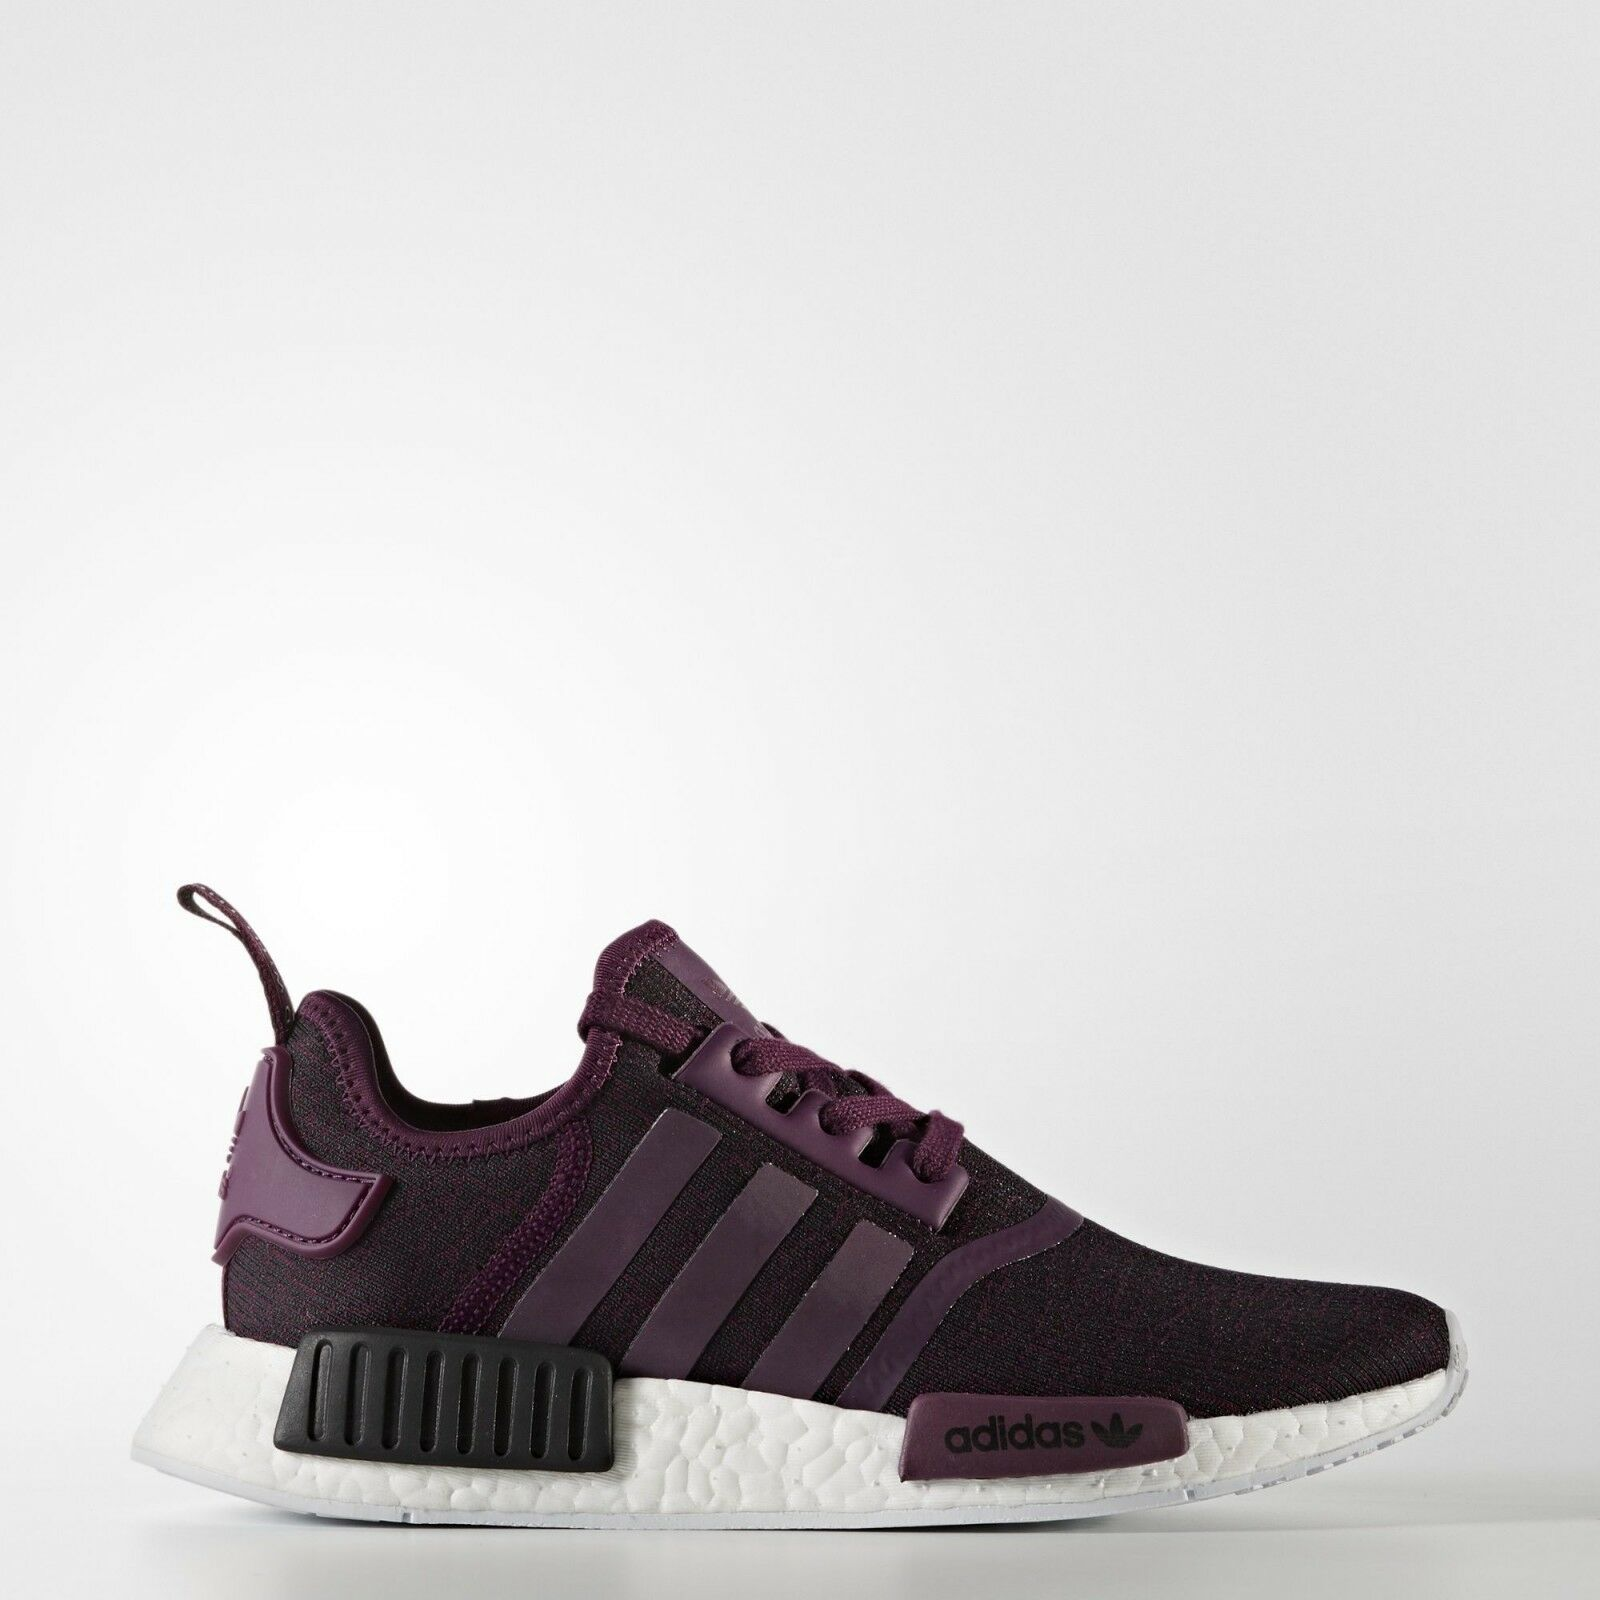 new style 24ad4 2a502 Adidas NMD R1 Purple Maroon Europe Women s Size 9.5 9.5 9.5 d14915